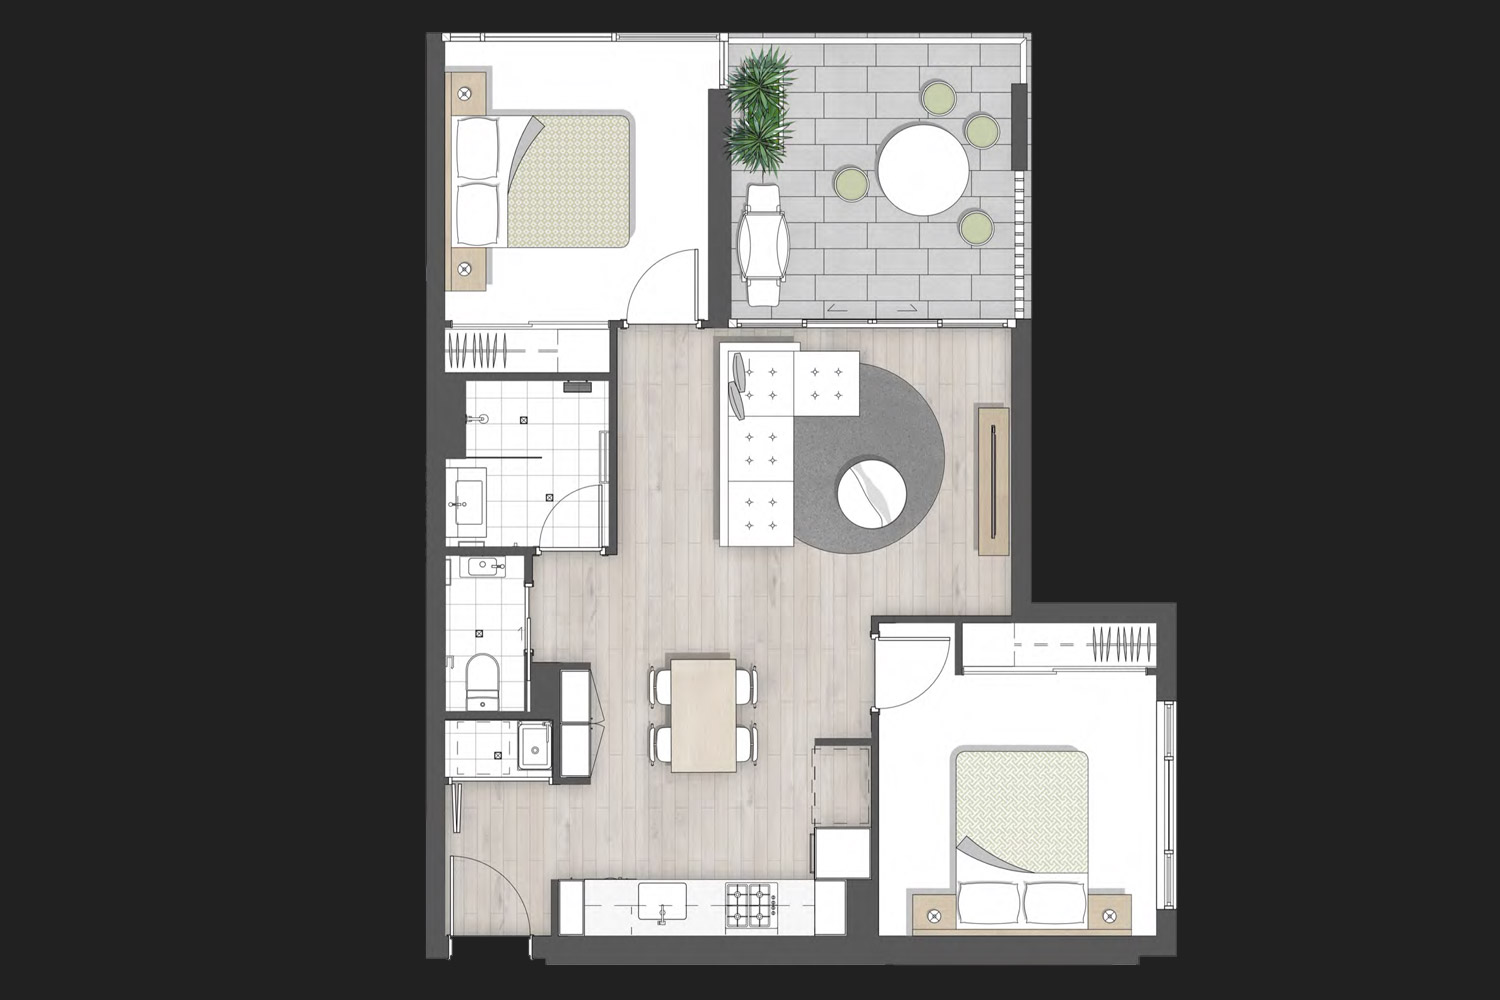 arena apartments floor plans 9 edmondstone street brisbane